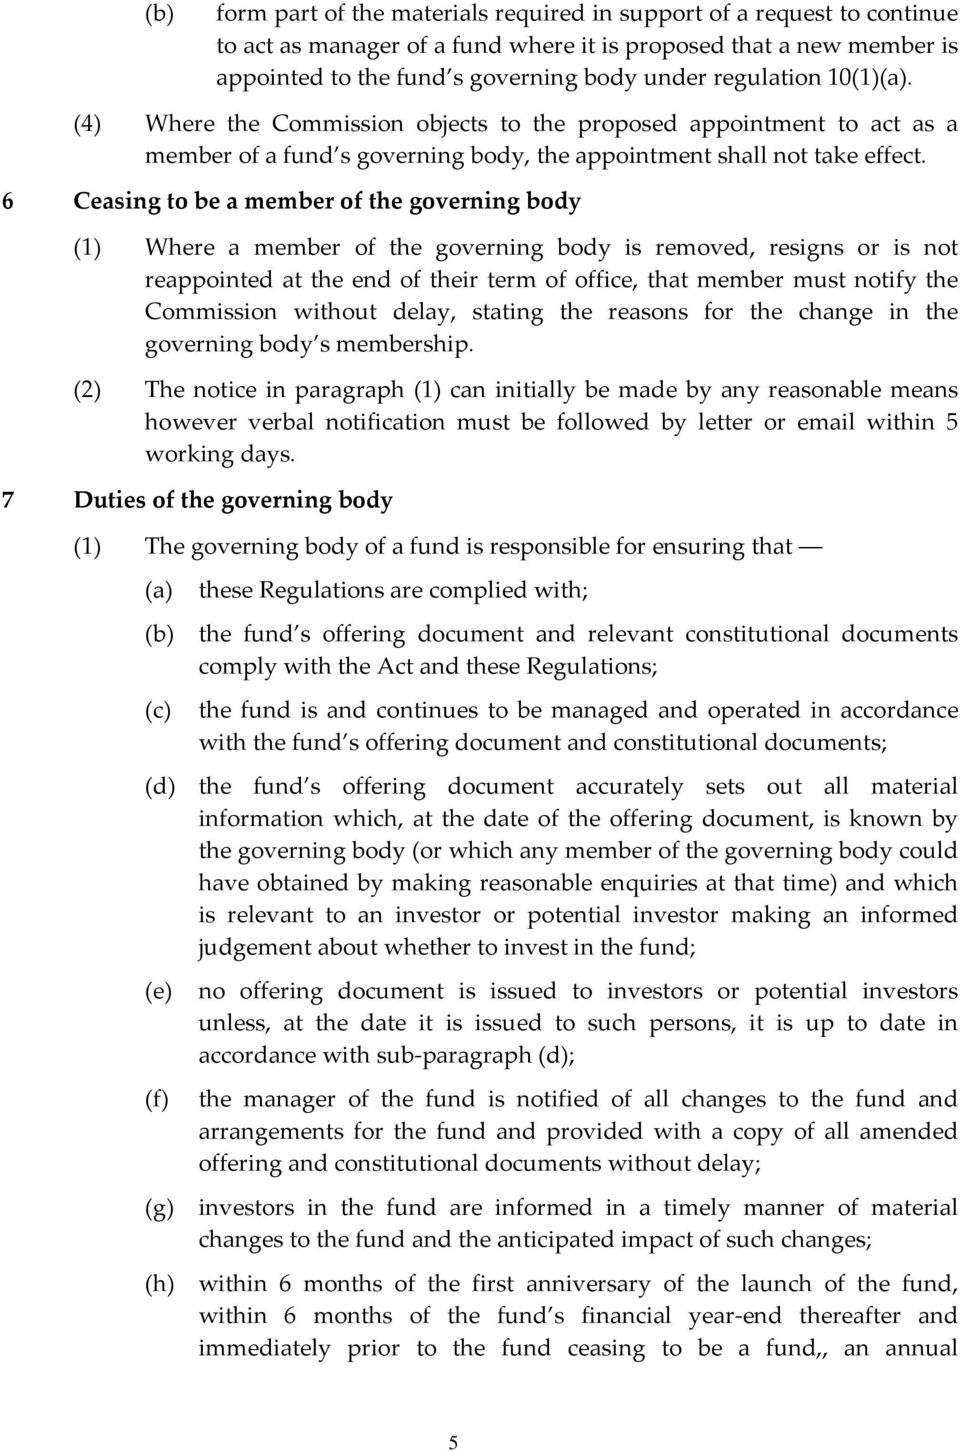 6 Ceasing to be a member of the governing body (1) Where a member of the governing body is removed, resigns or is not reappointed at the end of their term of office, that member must notify the